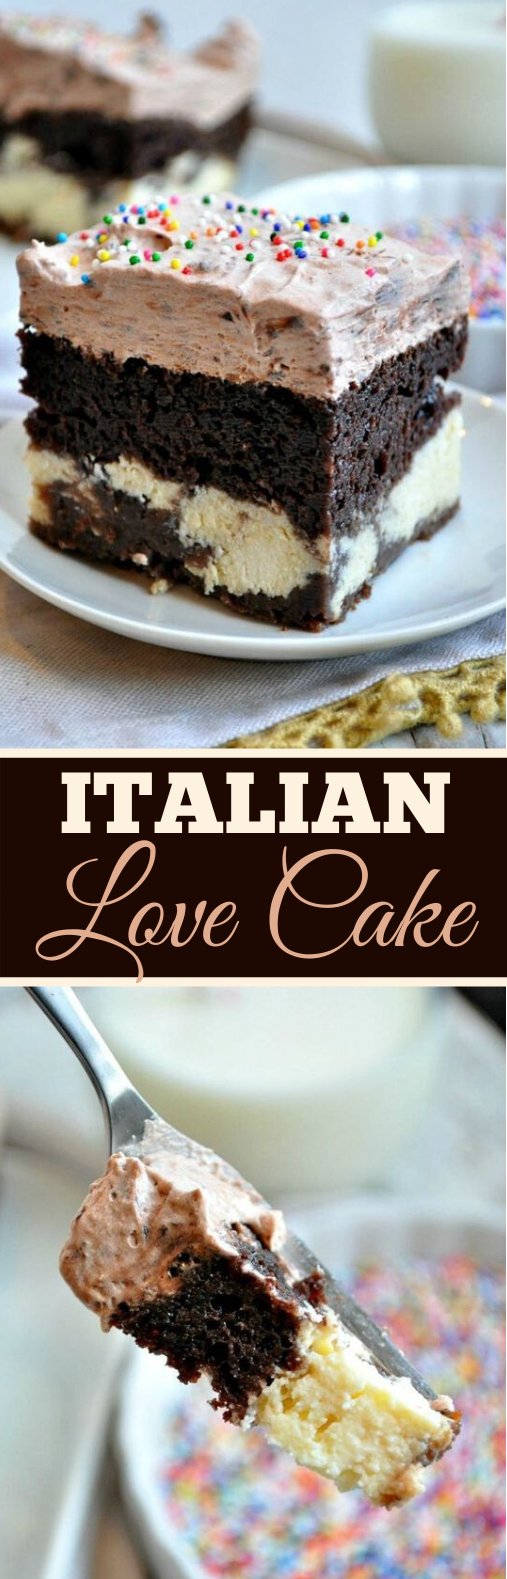 Easy Chocolate Italian Love Cake #cake #recipes #desserts #baking #chocolate